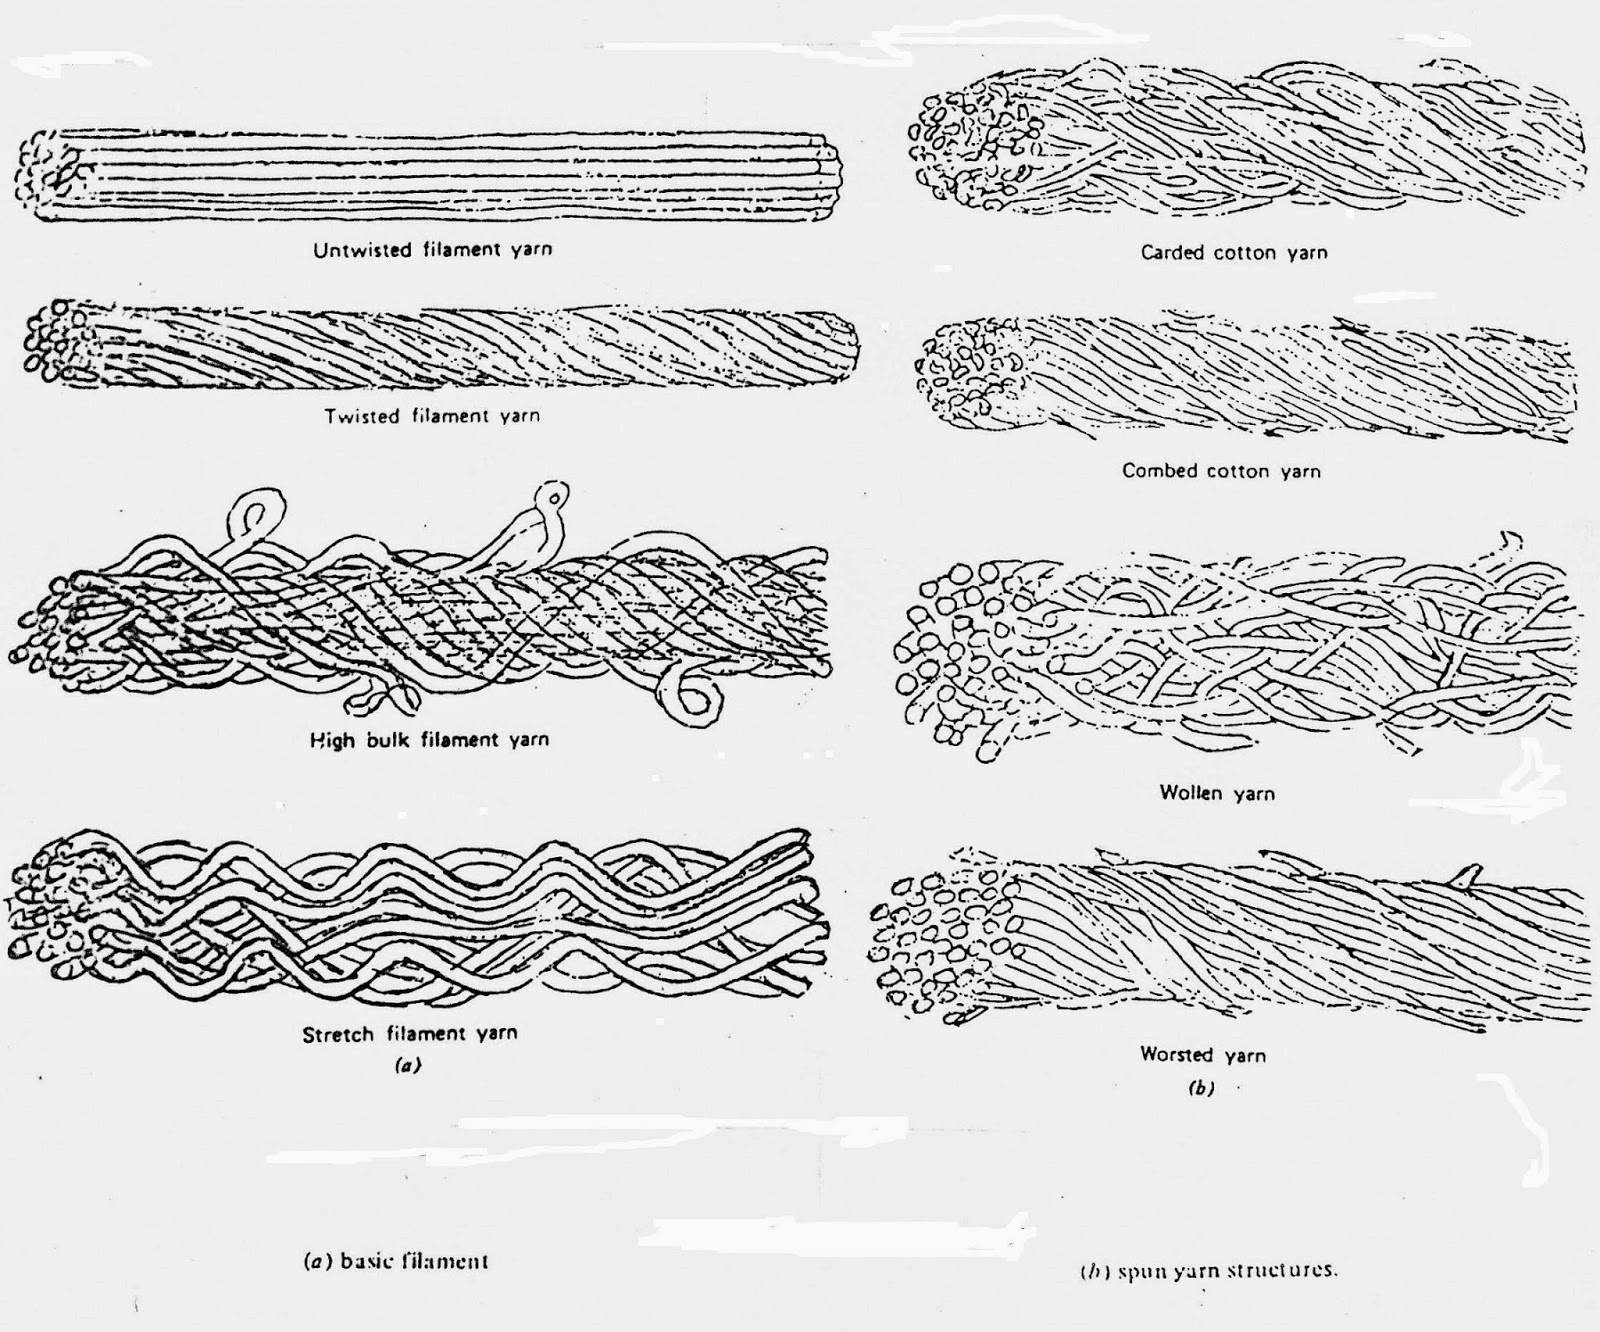 yarns definition of yarn yarns from fibers to yarns definition of yarn ...